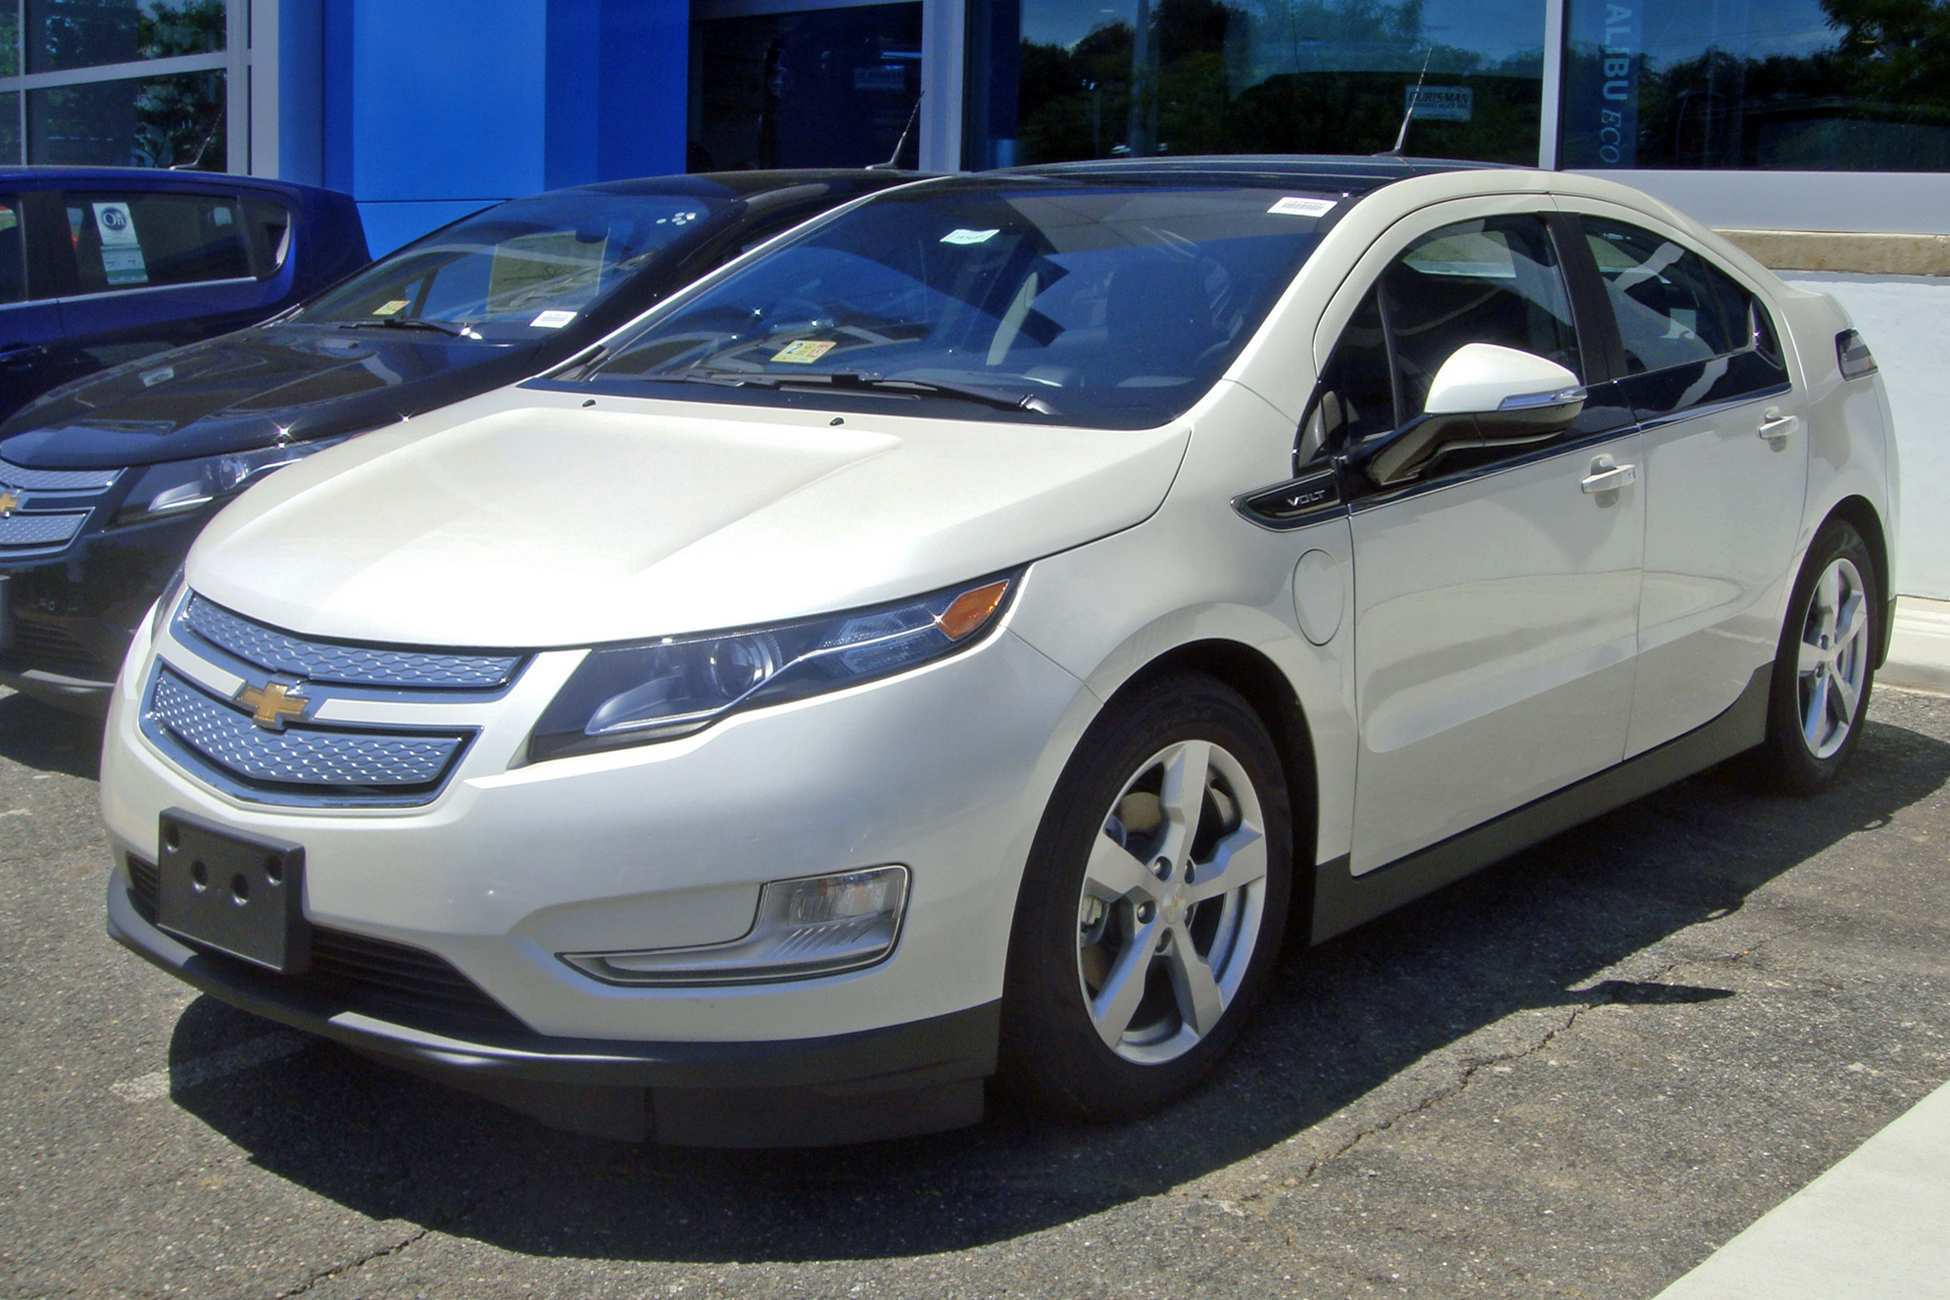 29 All New 2020 Chevy Volt Redesign And Review